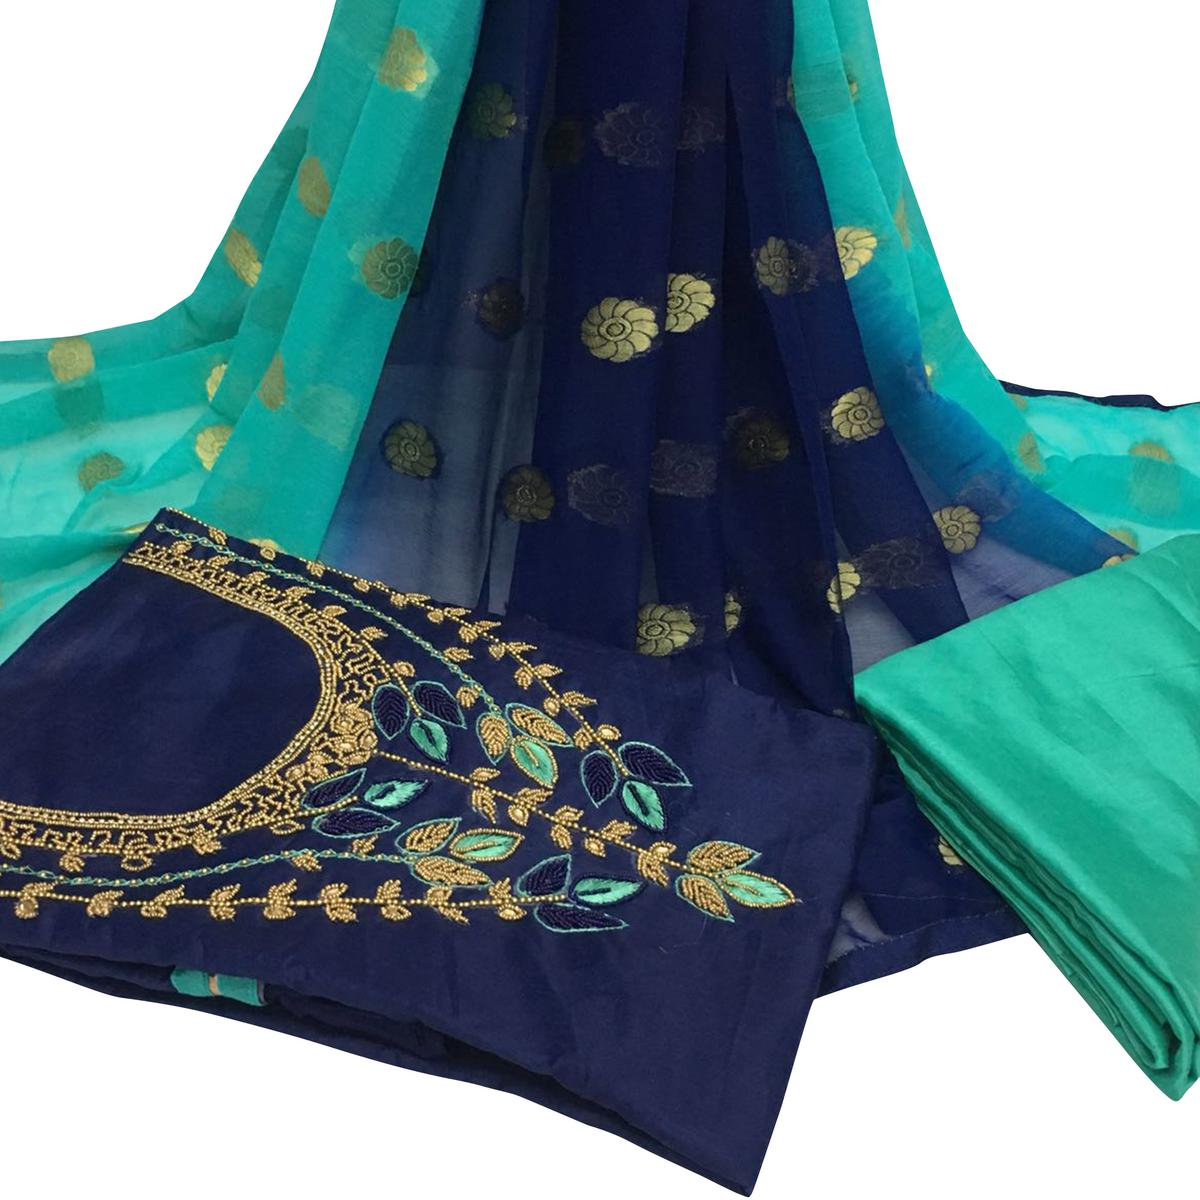 Irresistible Navy Blue Colored Partywear Embroidered Santoon Dress Material